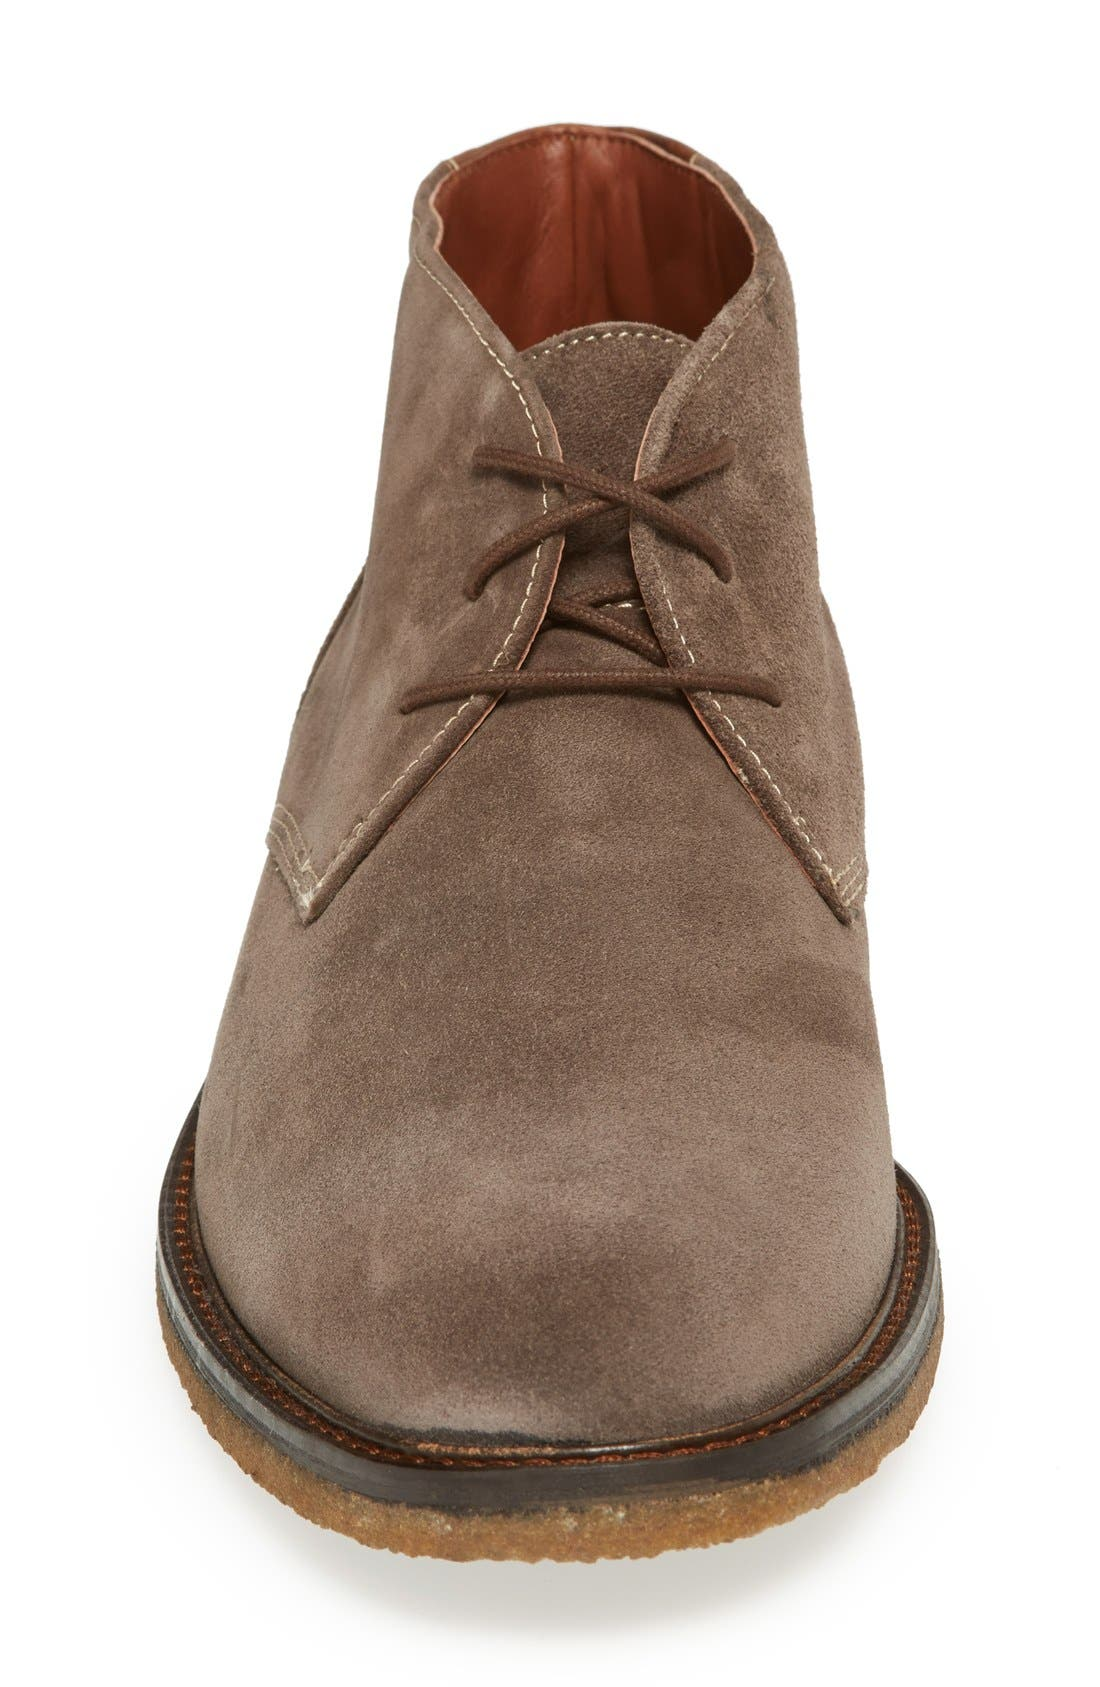 'Copeland' Suede Chukka Boot,                             Alternate thumbnail 29, color,